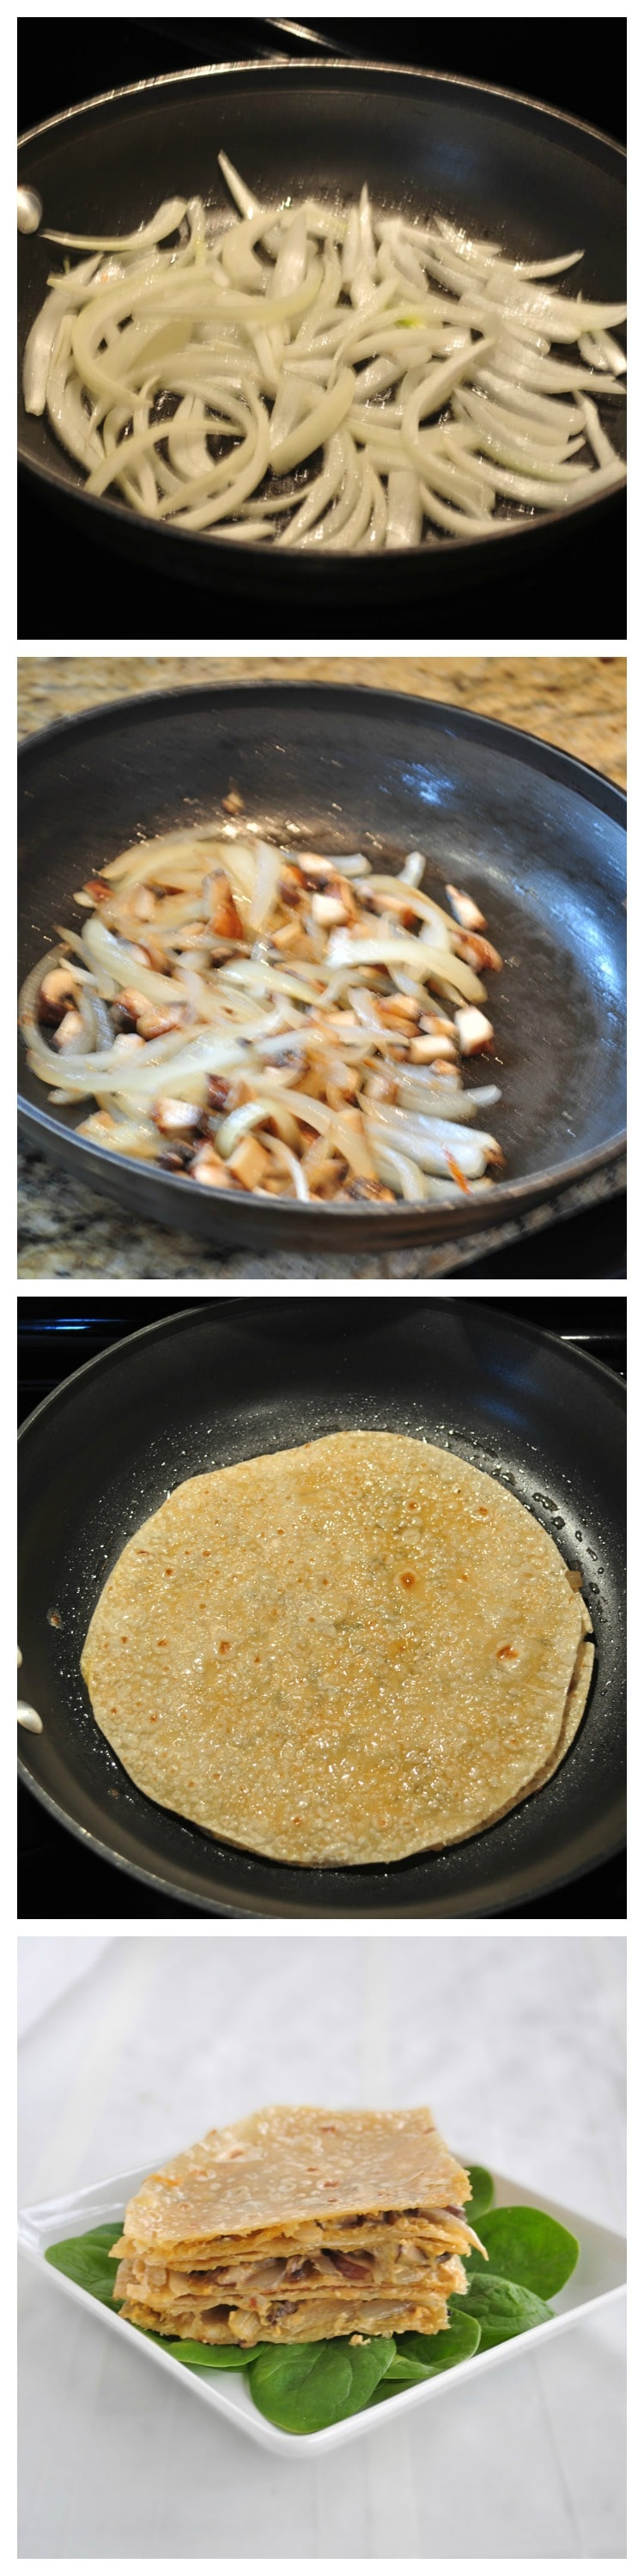 Vegan Quesadillas Steps